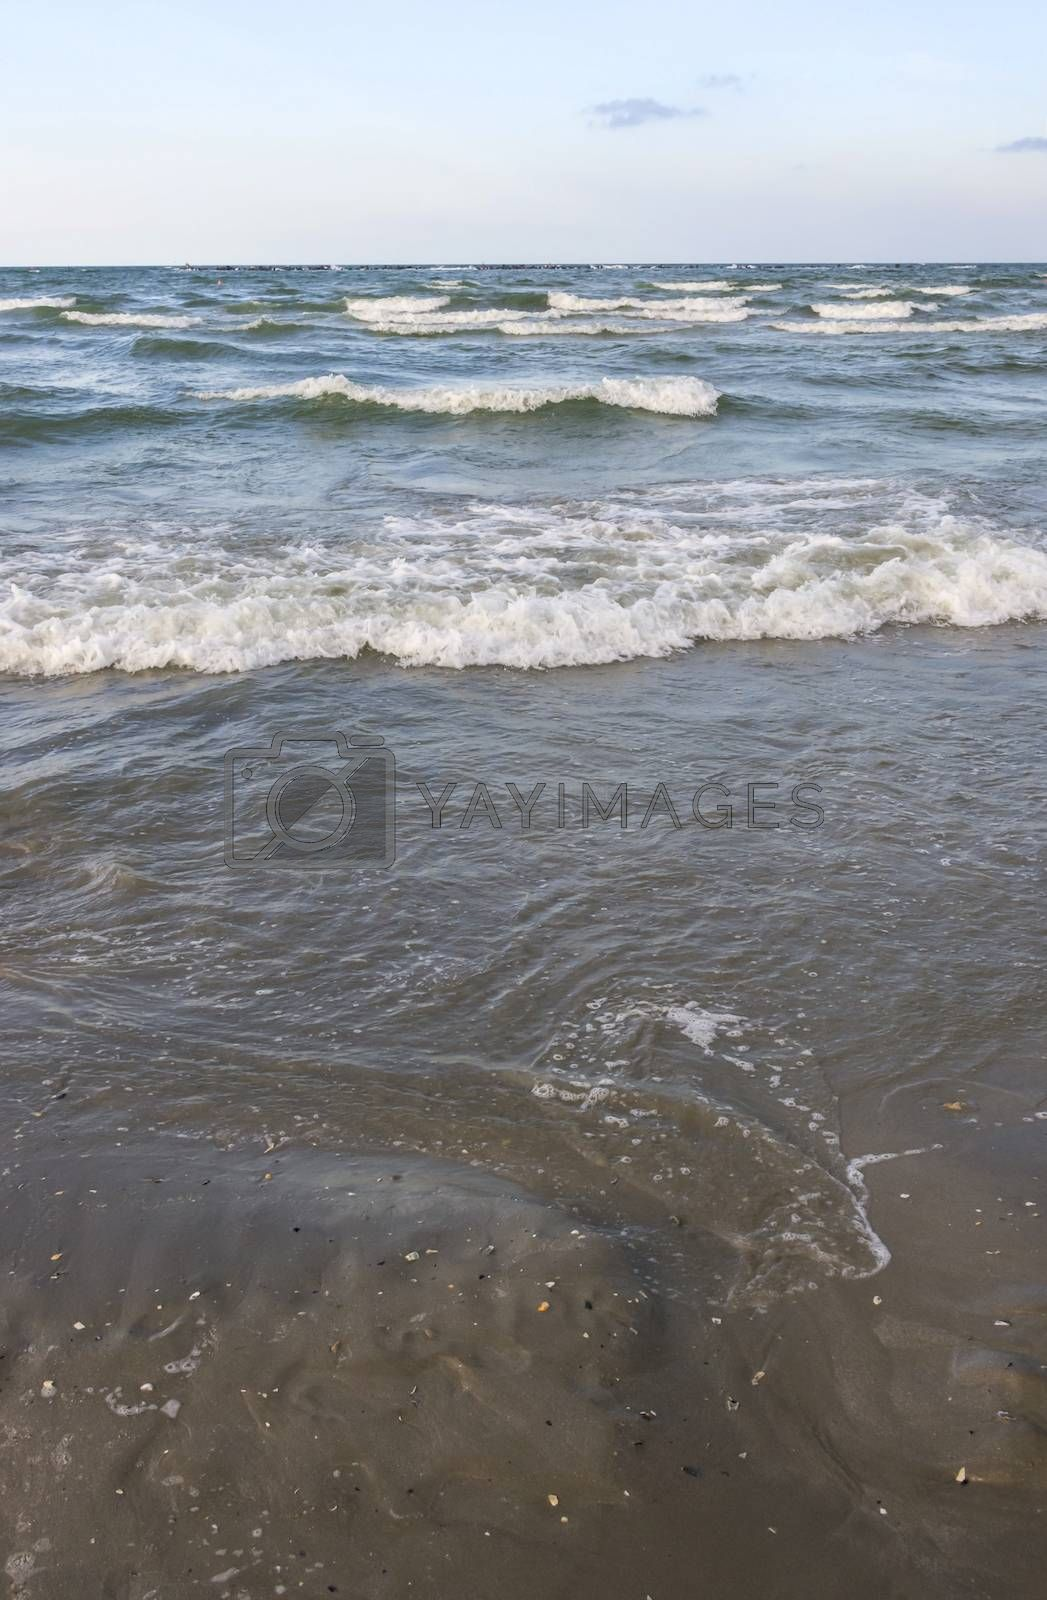 Sea waves splashing on a sandy beach.